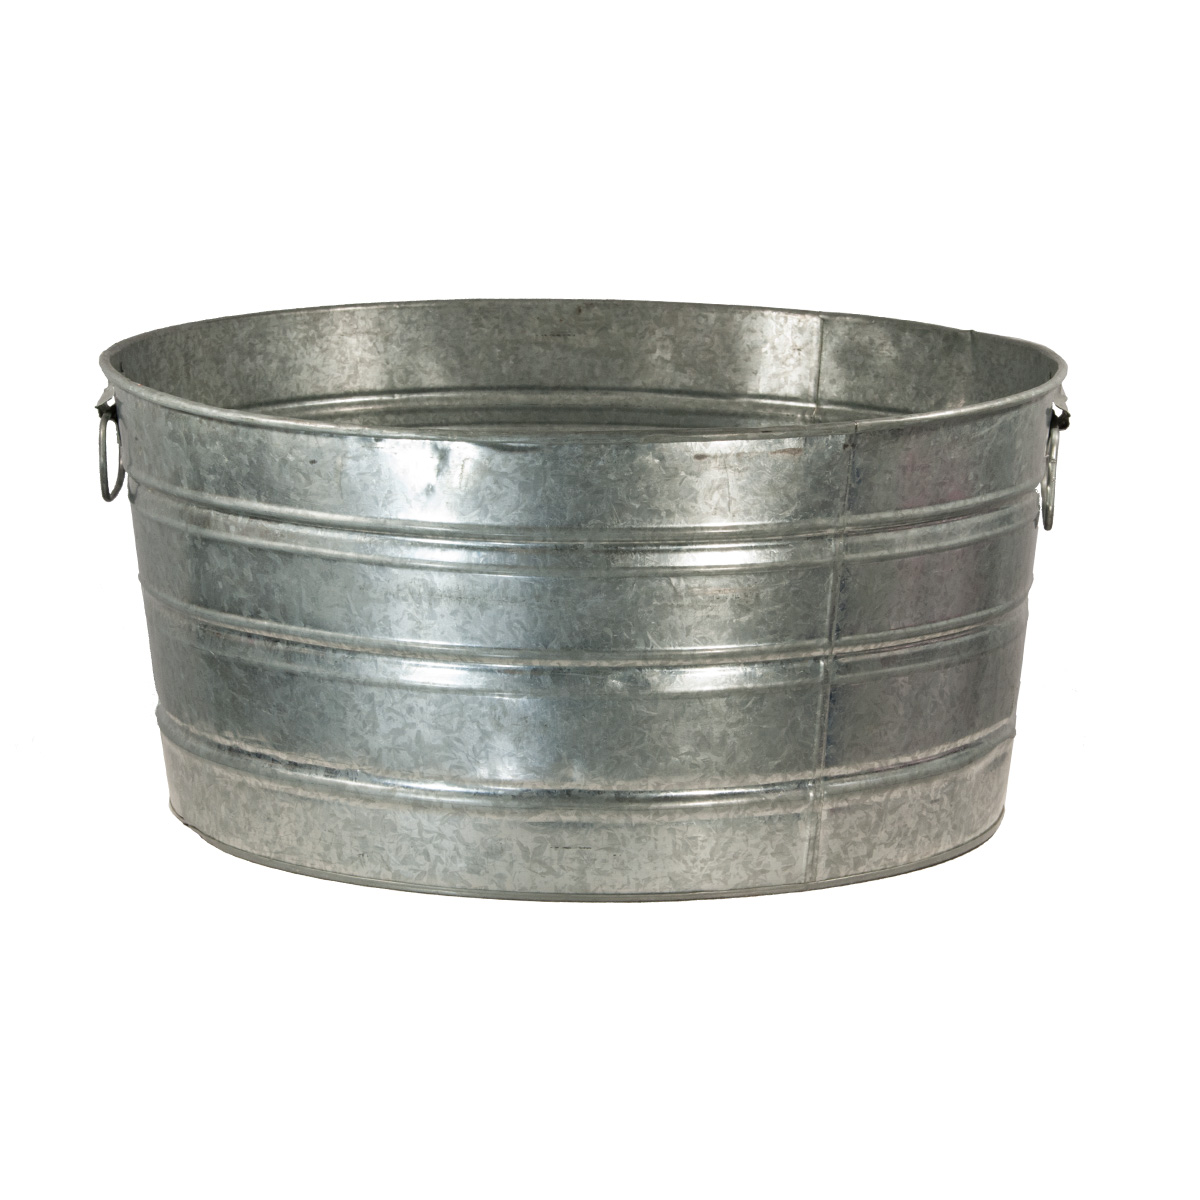 Galvanized Tub 24 Round